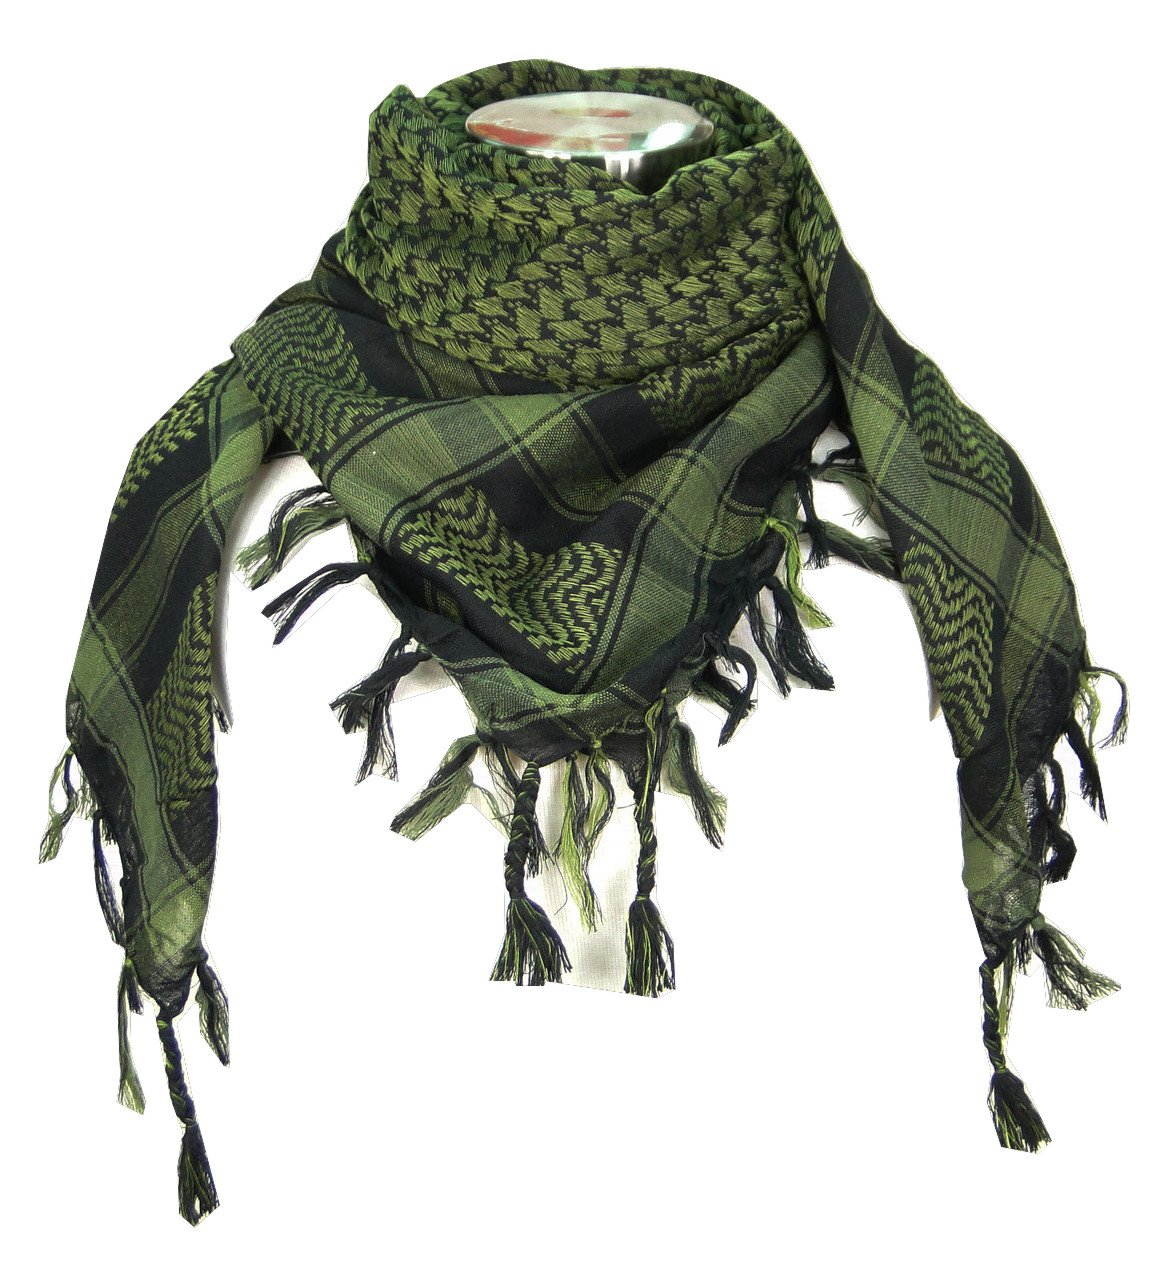 Premium Shemagh Head Neck Scarf - Green/Black